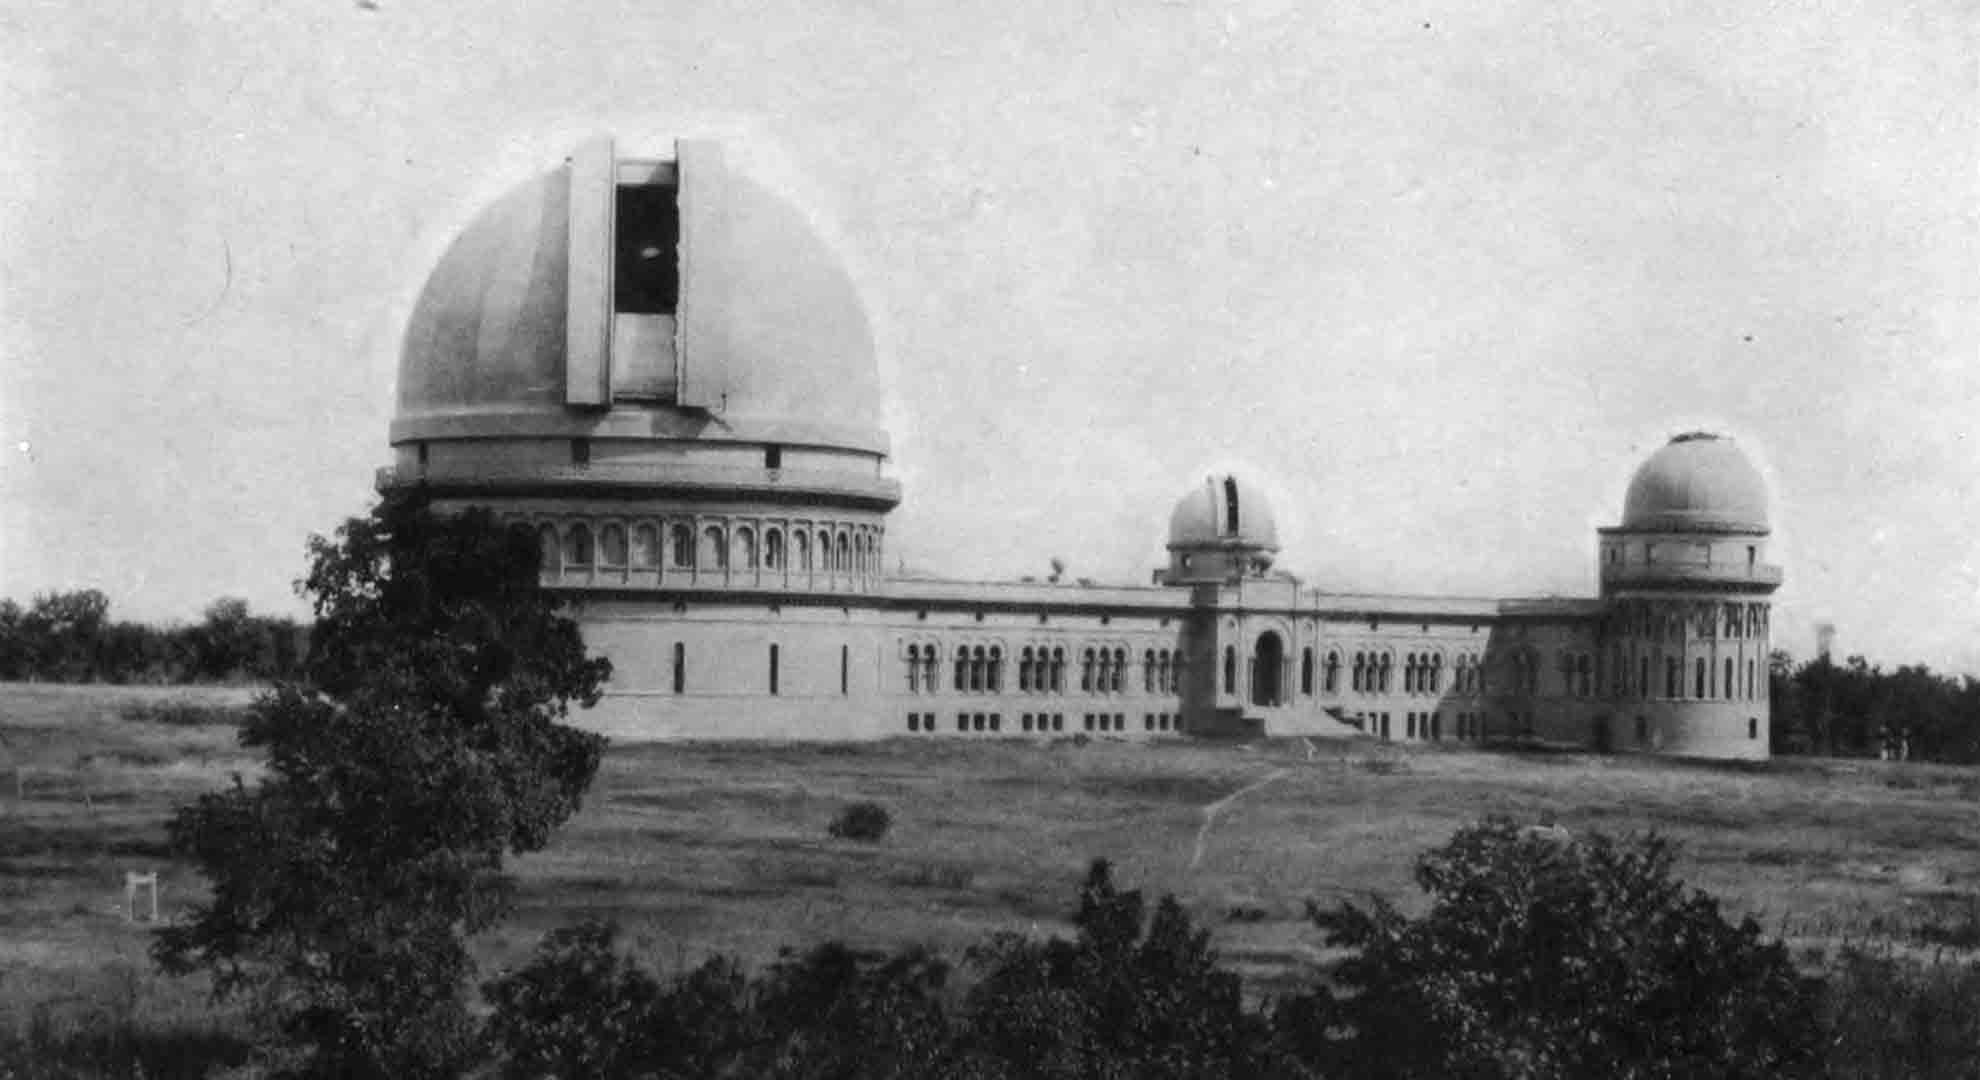 The Yerkes astronomical Observatory closed public operations in 2018